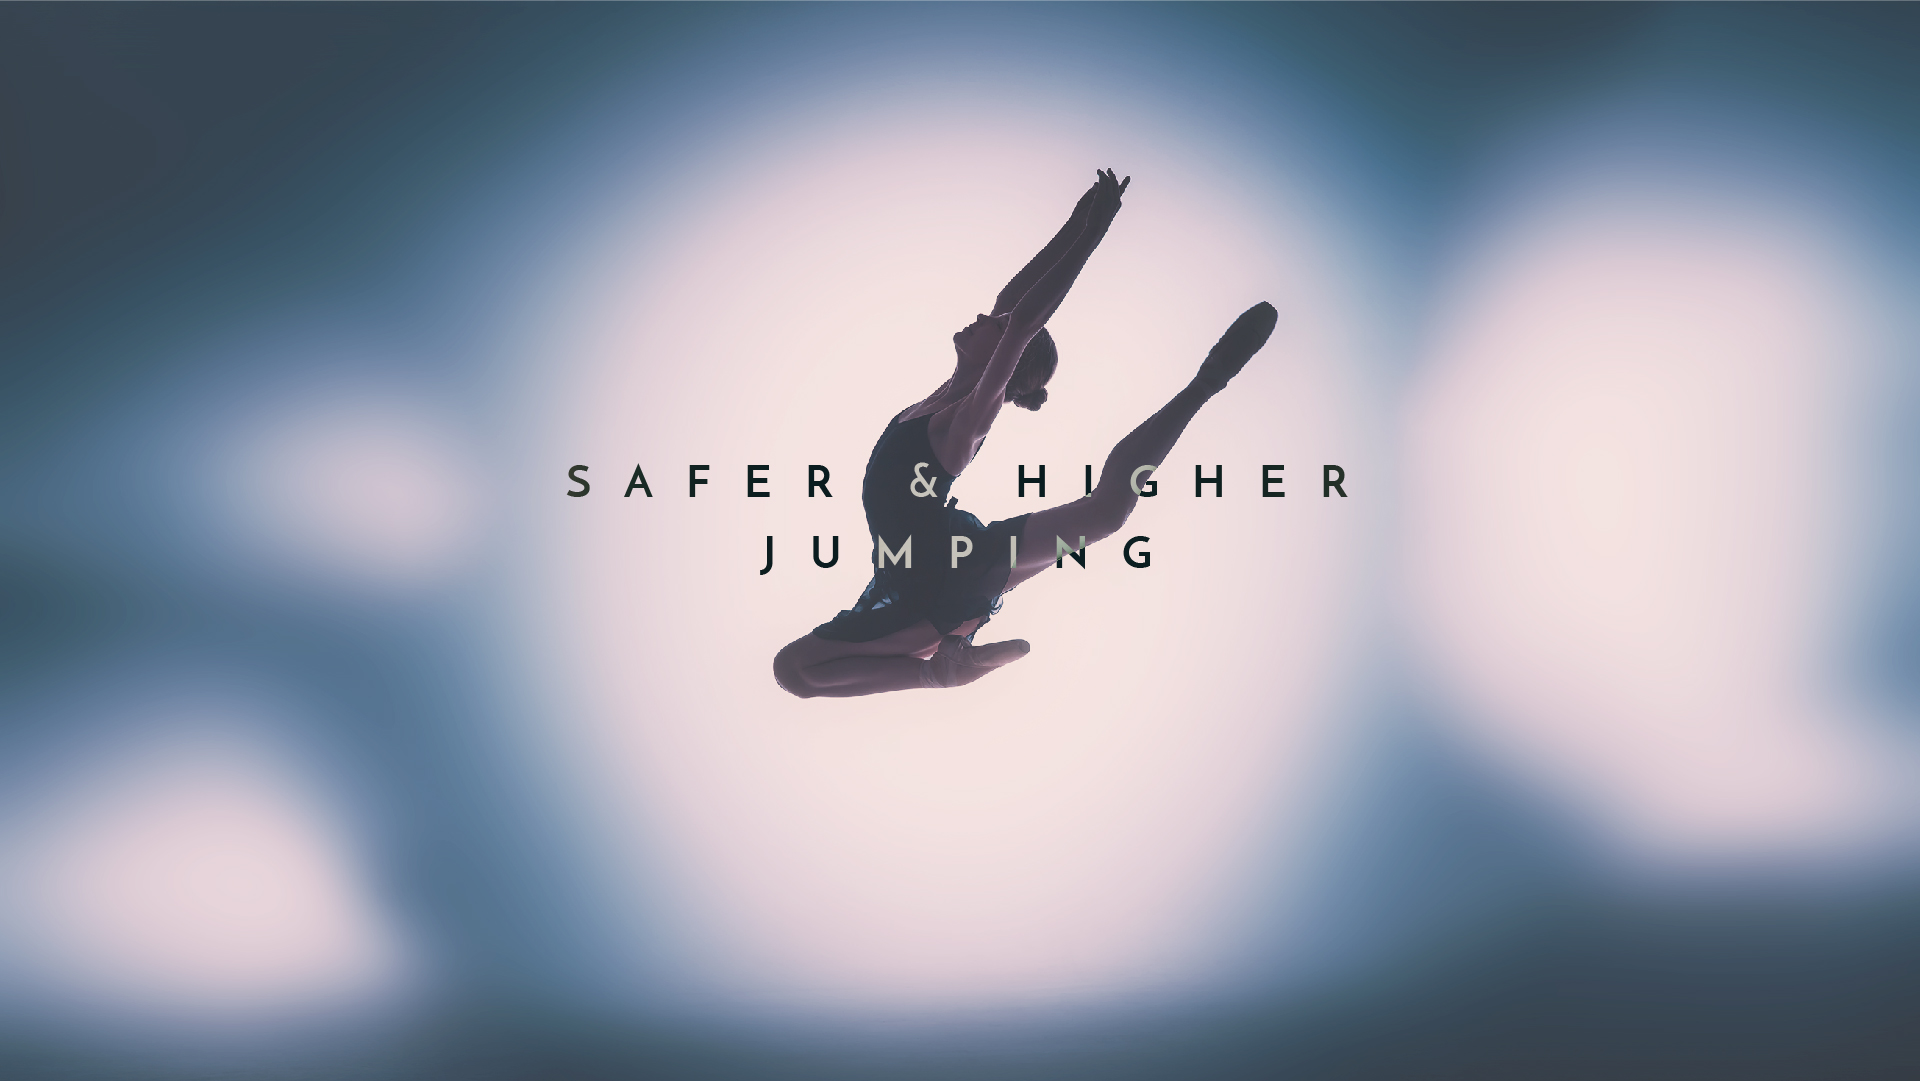 Safer Higher Jumping